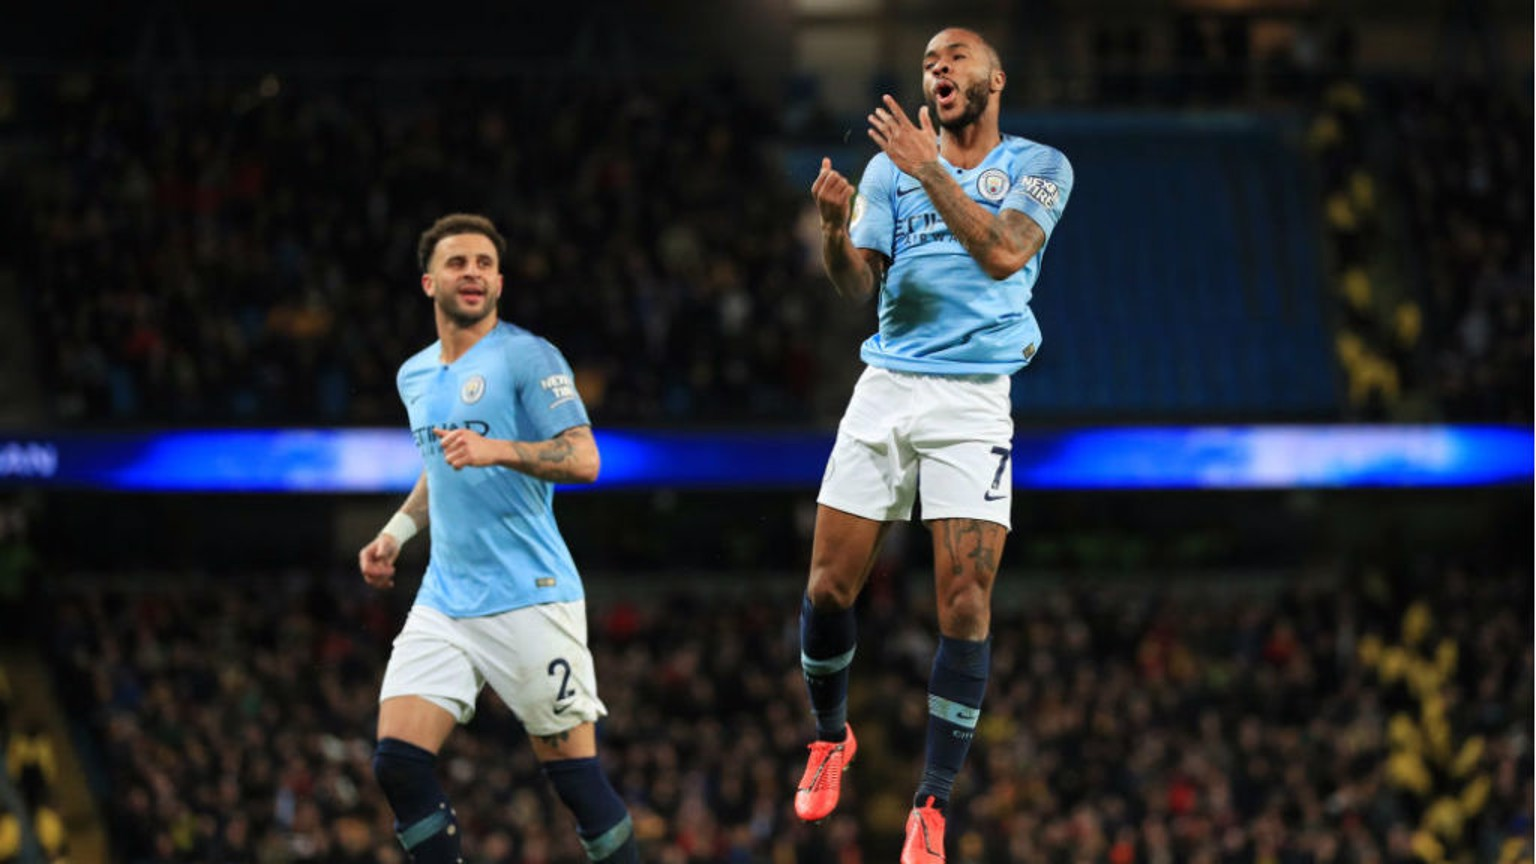 JUMPING FOR JOY: Raheem celebrates after sealing his hat-trick